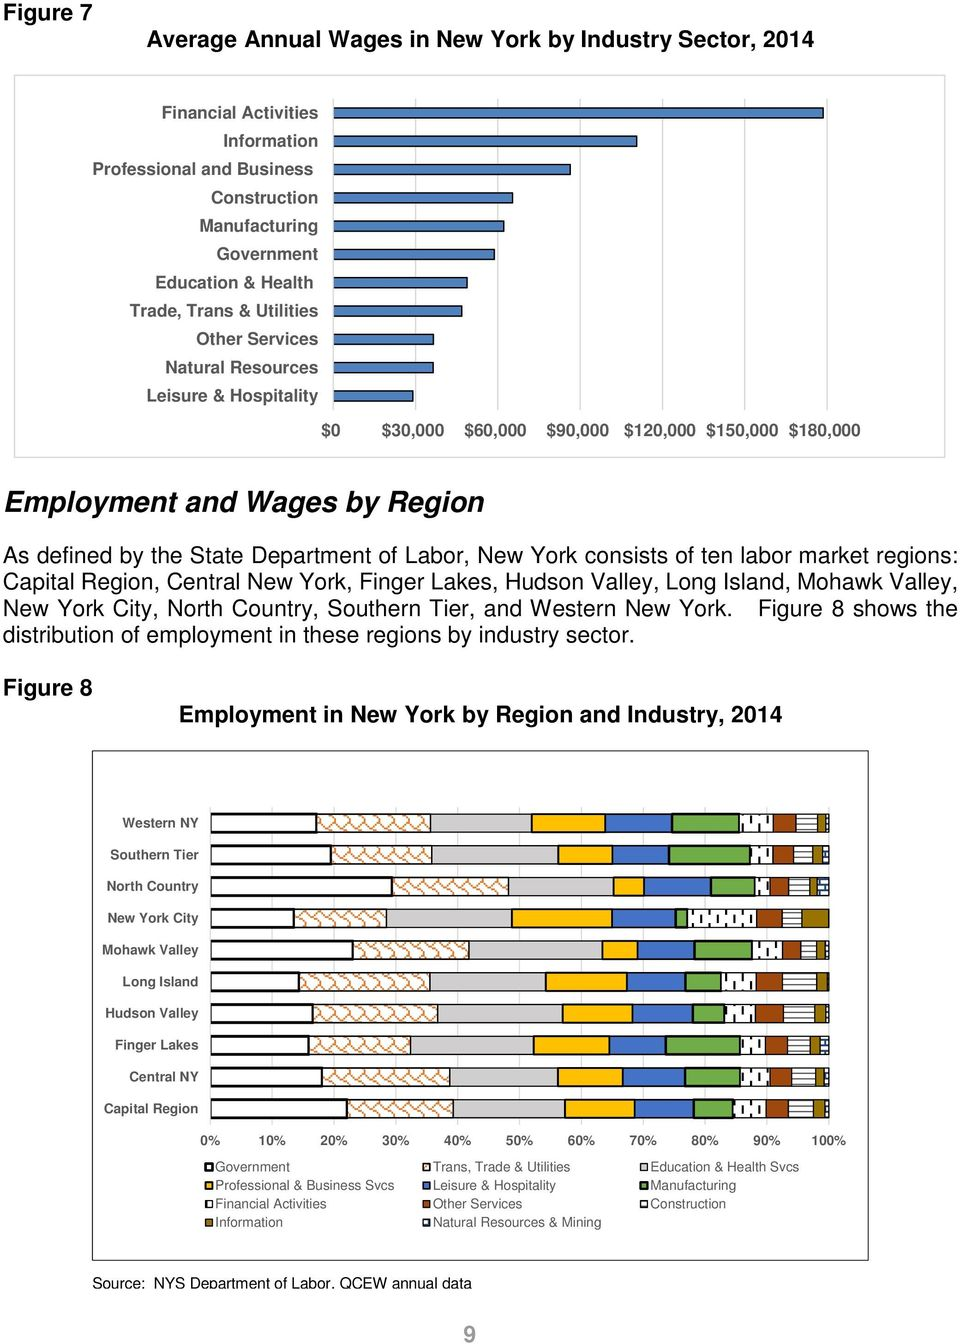 York consists of ten labor market regions: Capital Region, Central New York, Finger Lakes, Hudson Valley, Long Island, Mohawk Valley, New York City, North Country, Southern Tier, and Western New York.